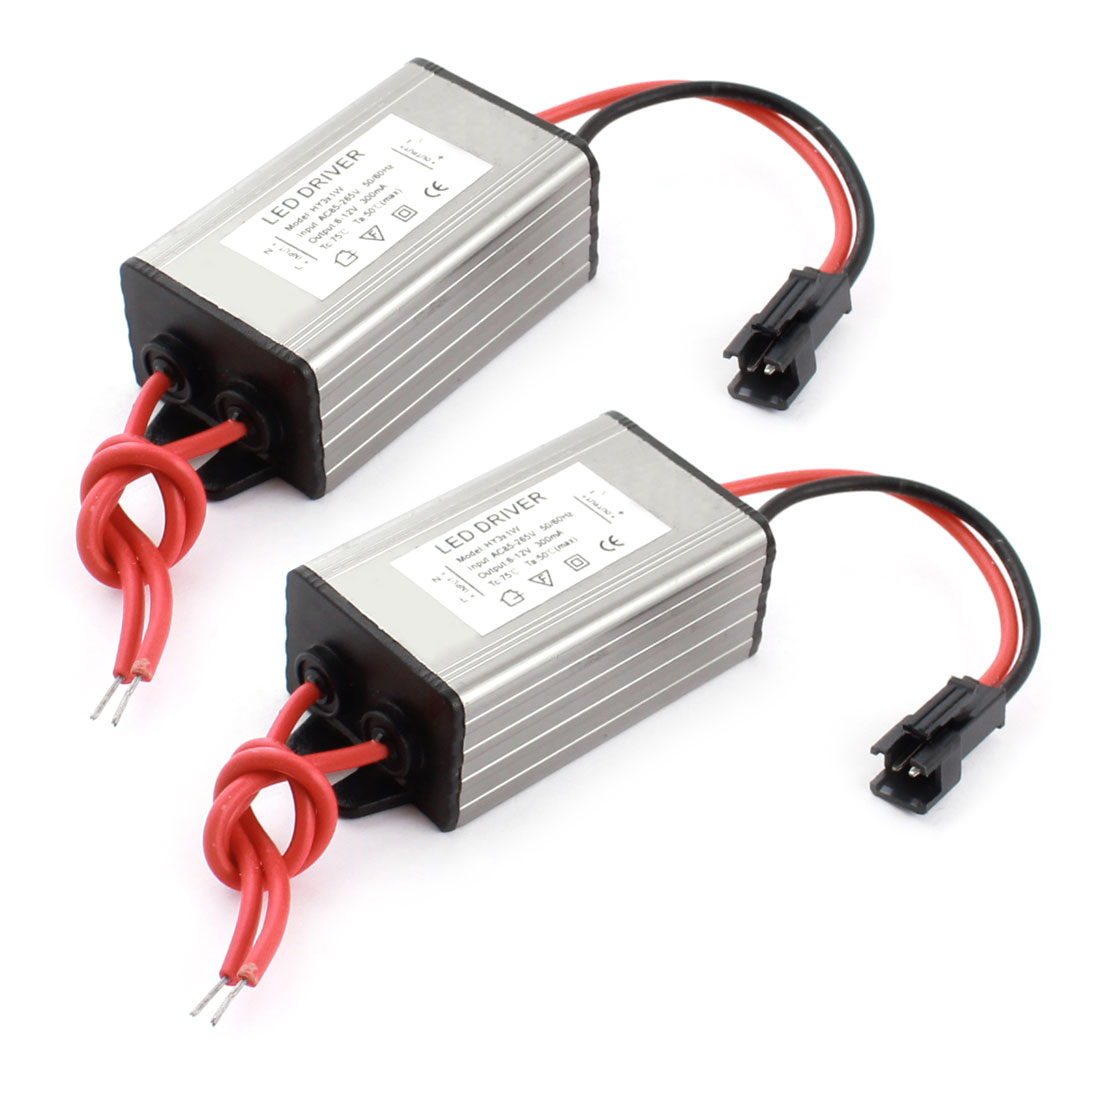 2 Pcs AC 85-265V DC 6-12V Waterproof 3x1W LED Driver Power Supply Converter